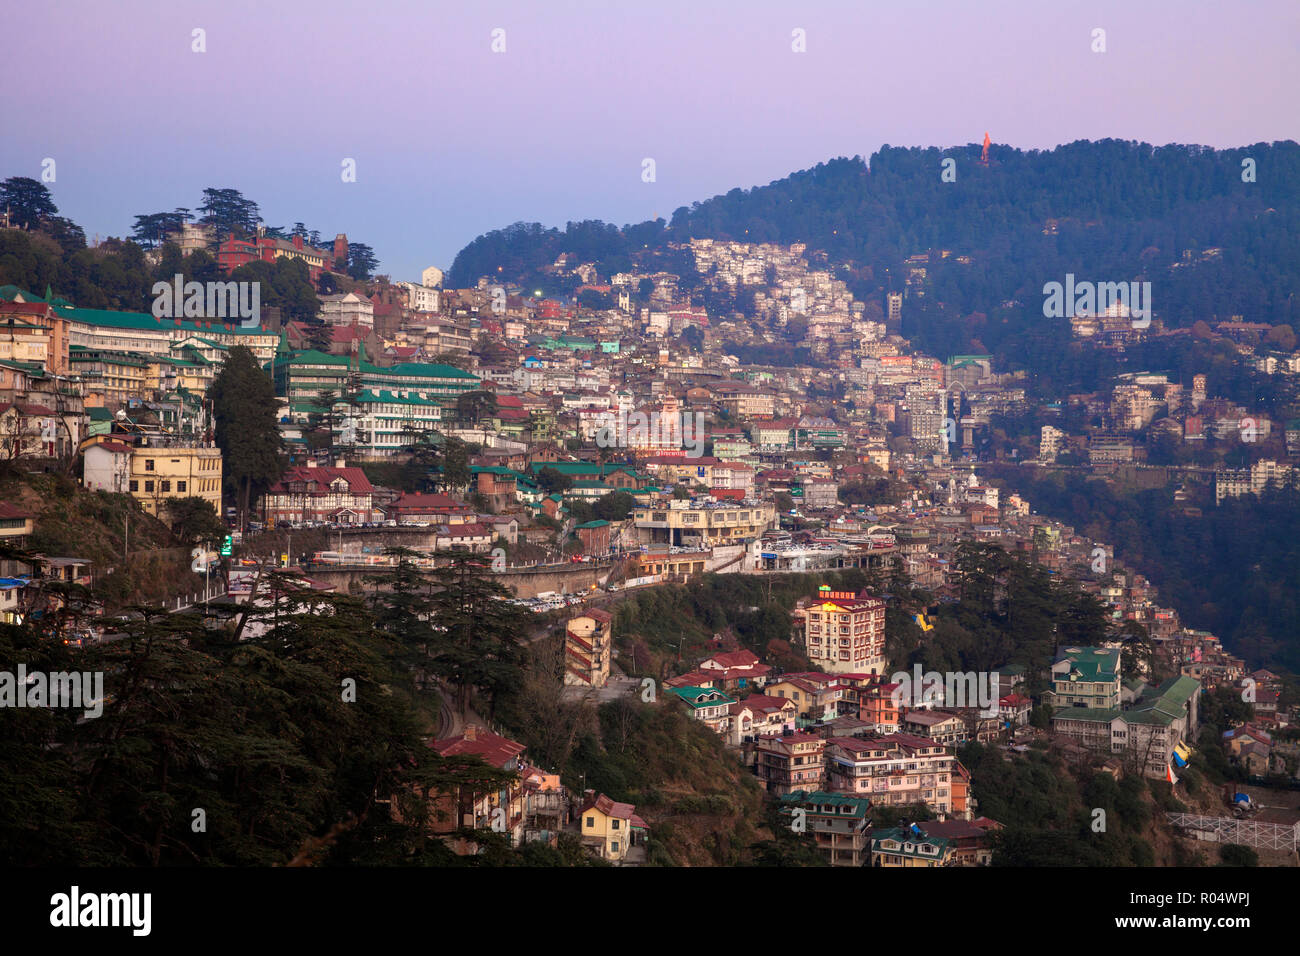 View of city, Shimla (Simla), Himachal Pradesh, India, Asia - Stock Image